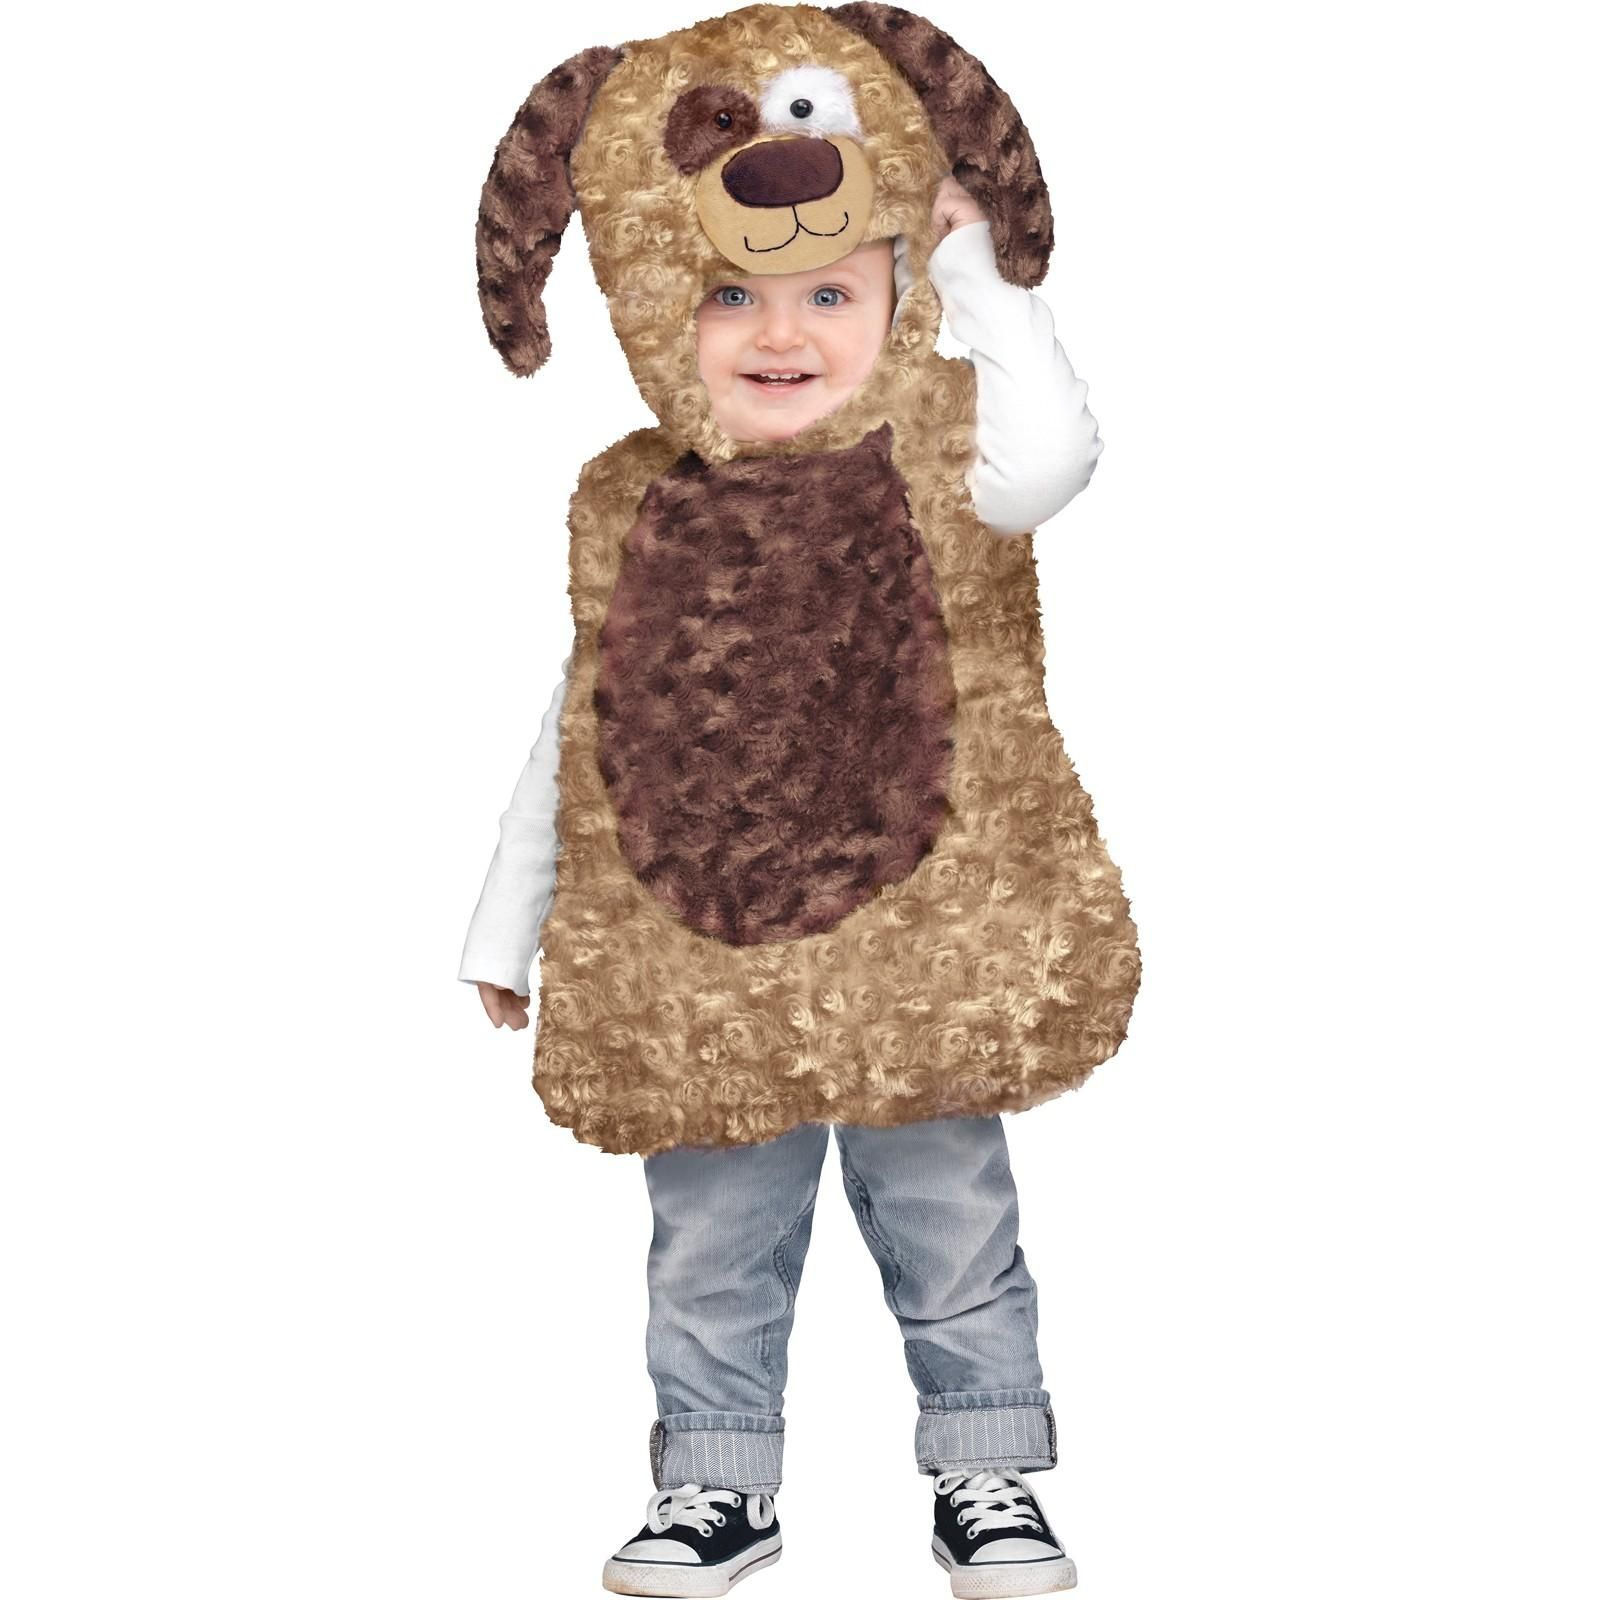 Cuddly Puppy Infant Costume 18-24M